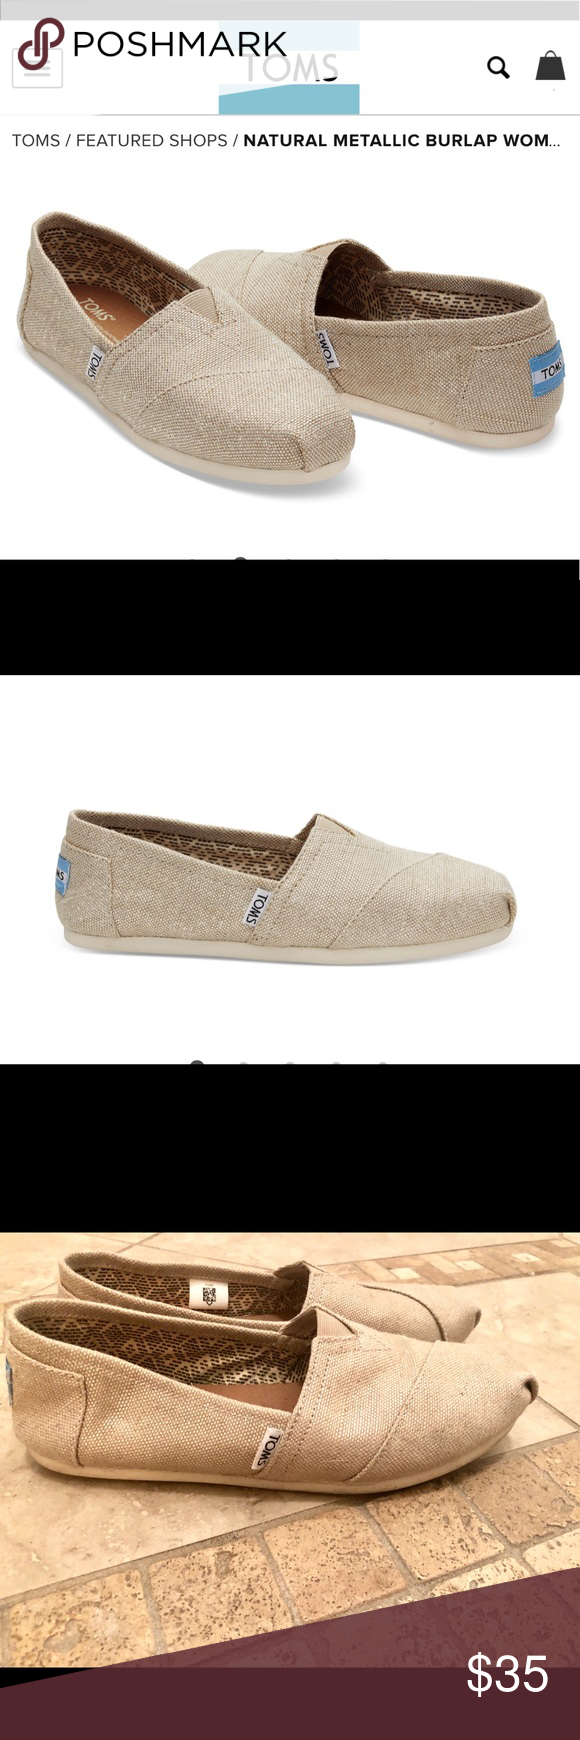 cbb45d513fa TOMS Classic Natural Metallic Burplap Shoe 8W! TOMS Natural Metallic Burlap Women s  Classics 8W!